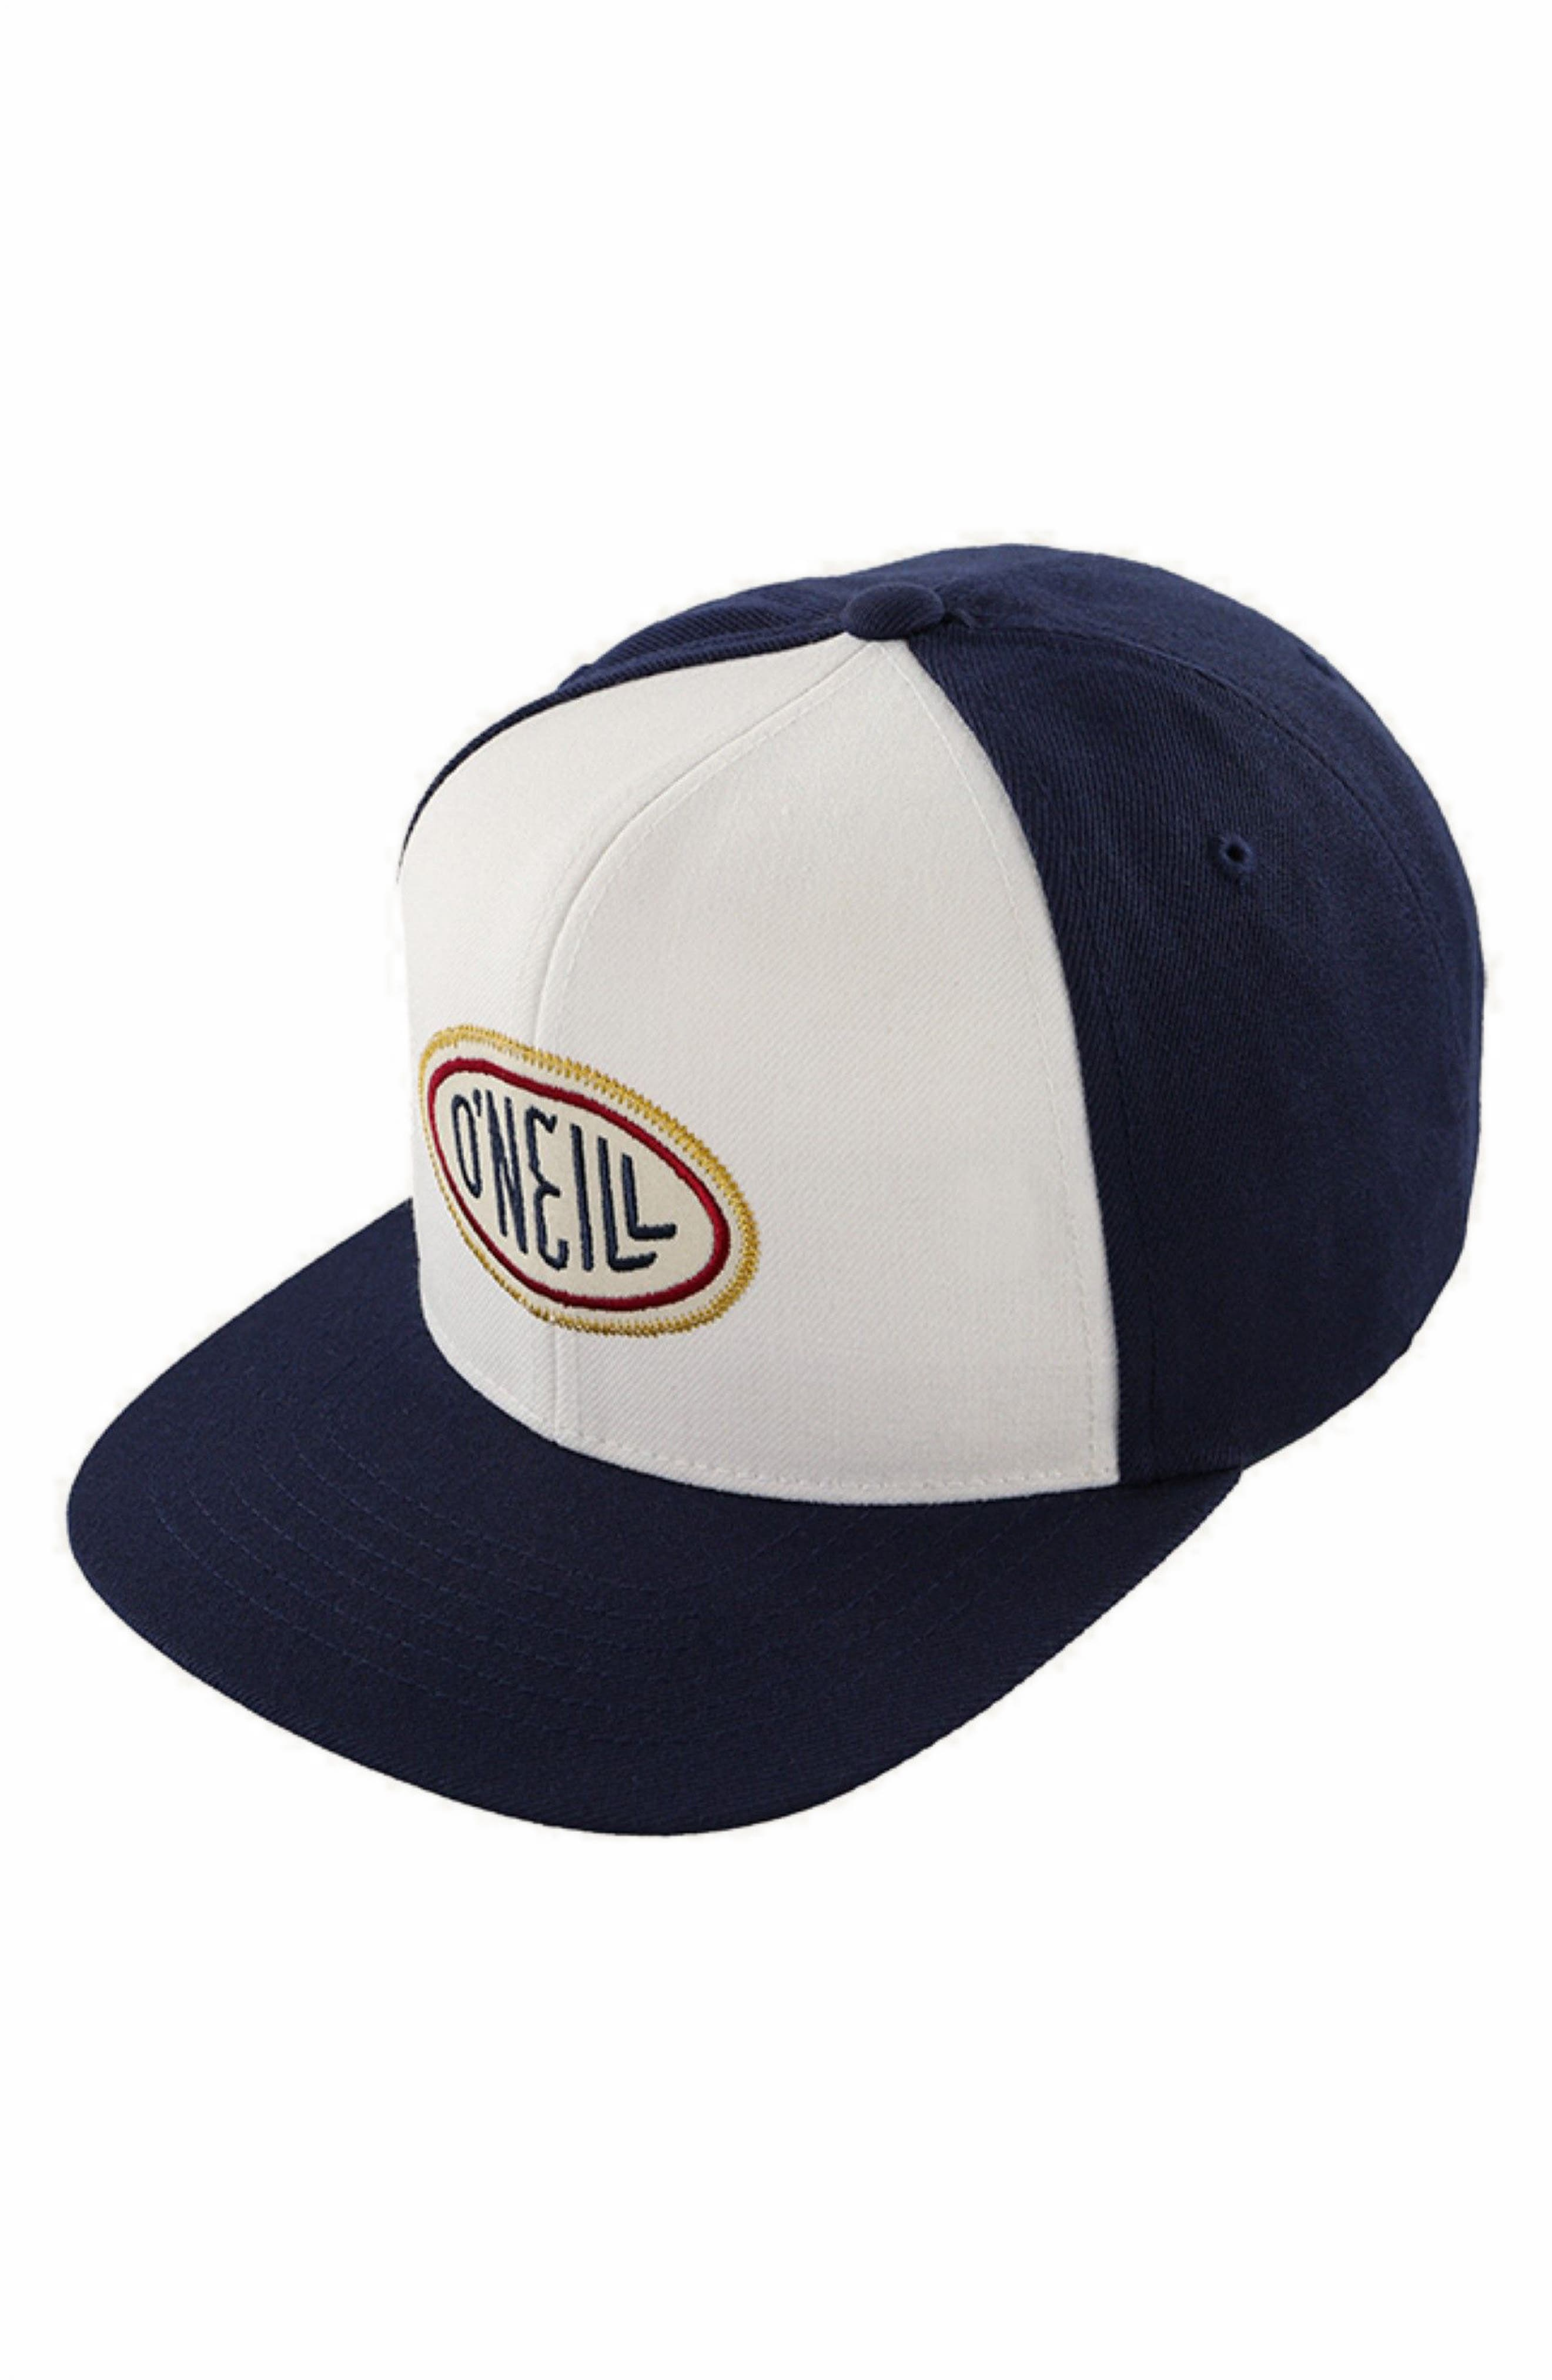 Roadie Logo Cap,                         Main,                         color, Navy